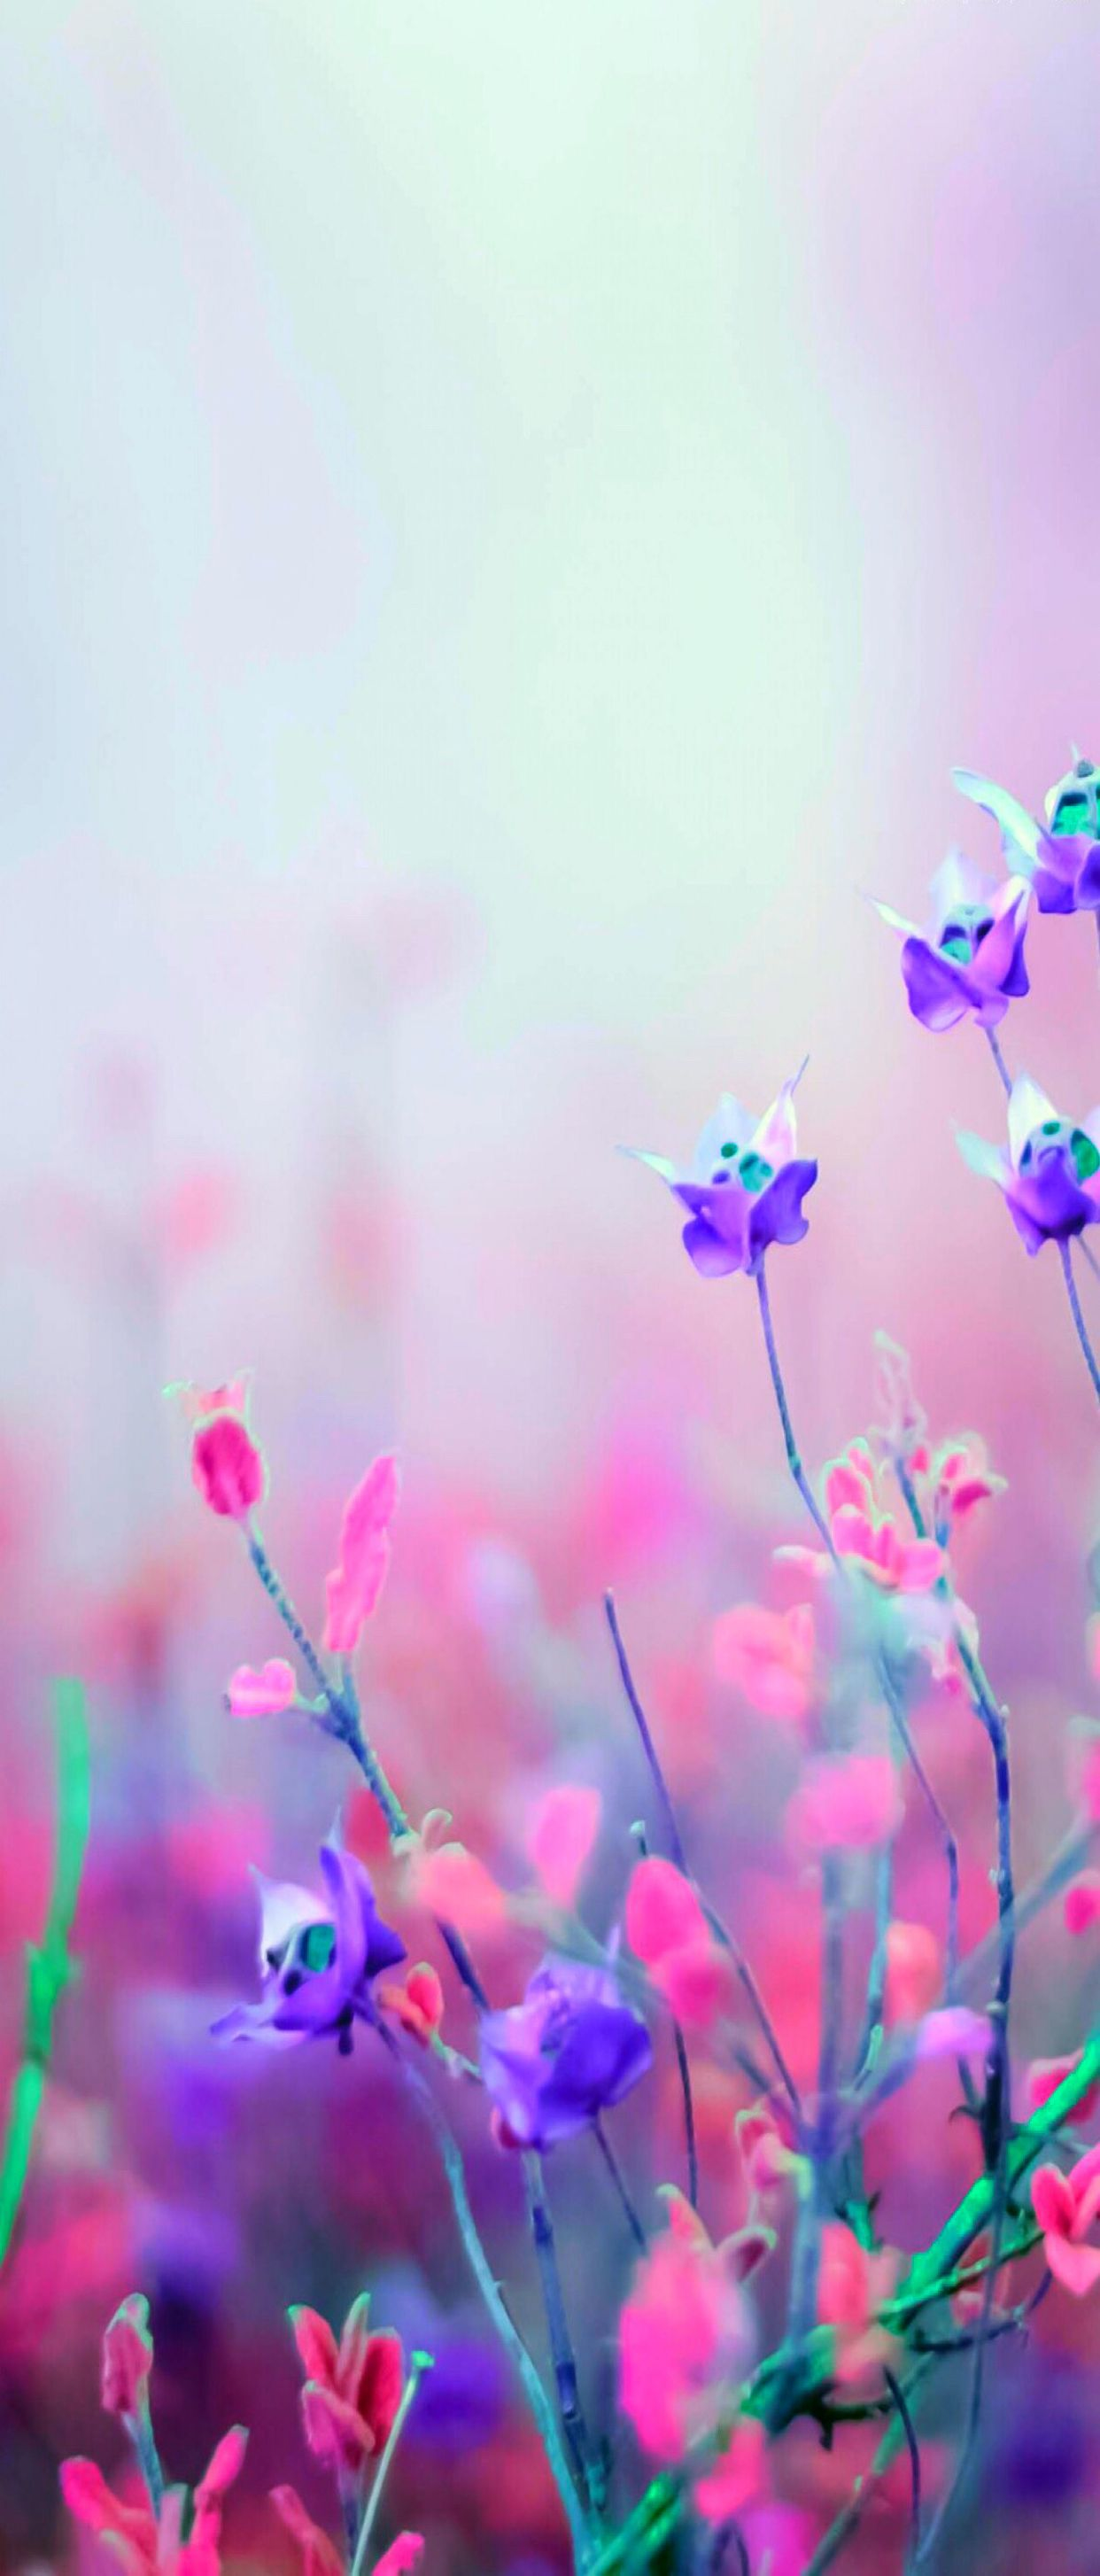 Floral Silver Pink Nature Violet Wallpaper Pattern Galaxy Colour Abstract Digital Art Purple Flowers Wallpaper Free Flower Wallpaper Flower Wallpaper